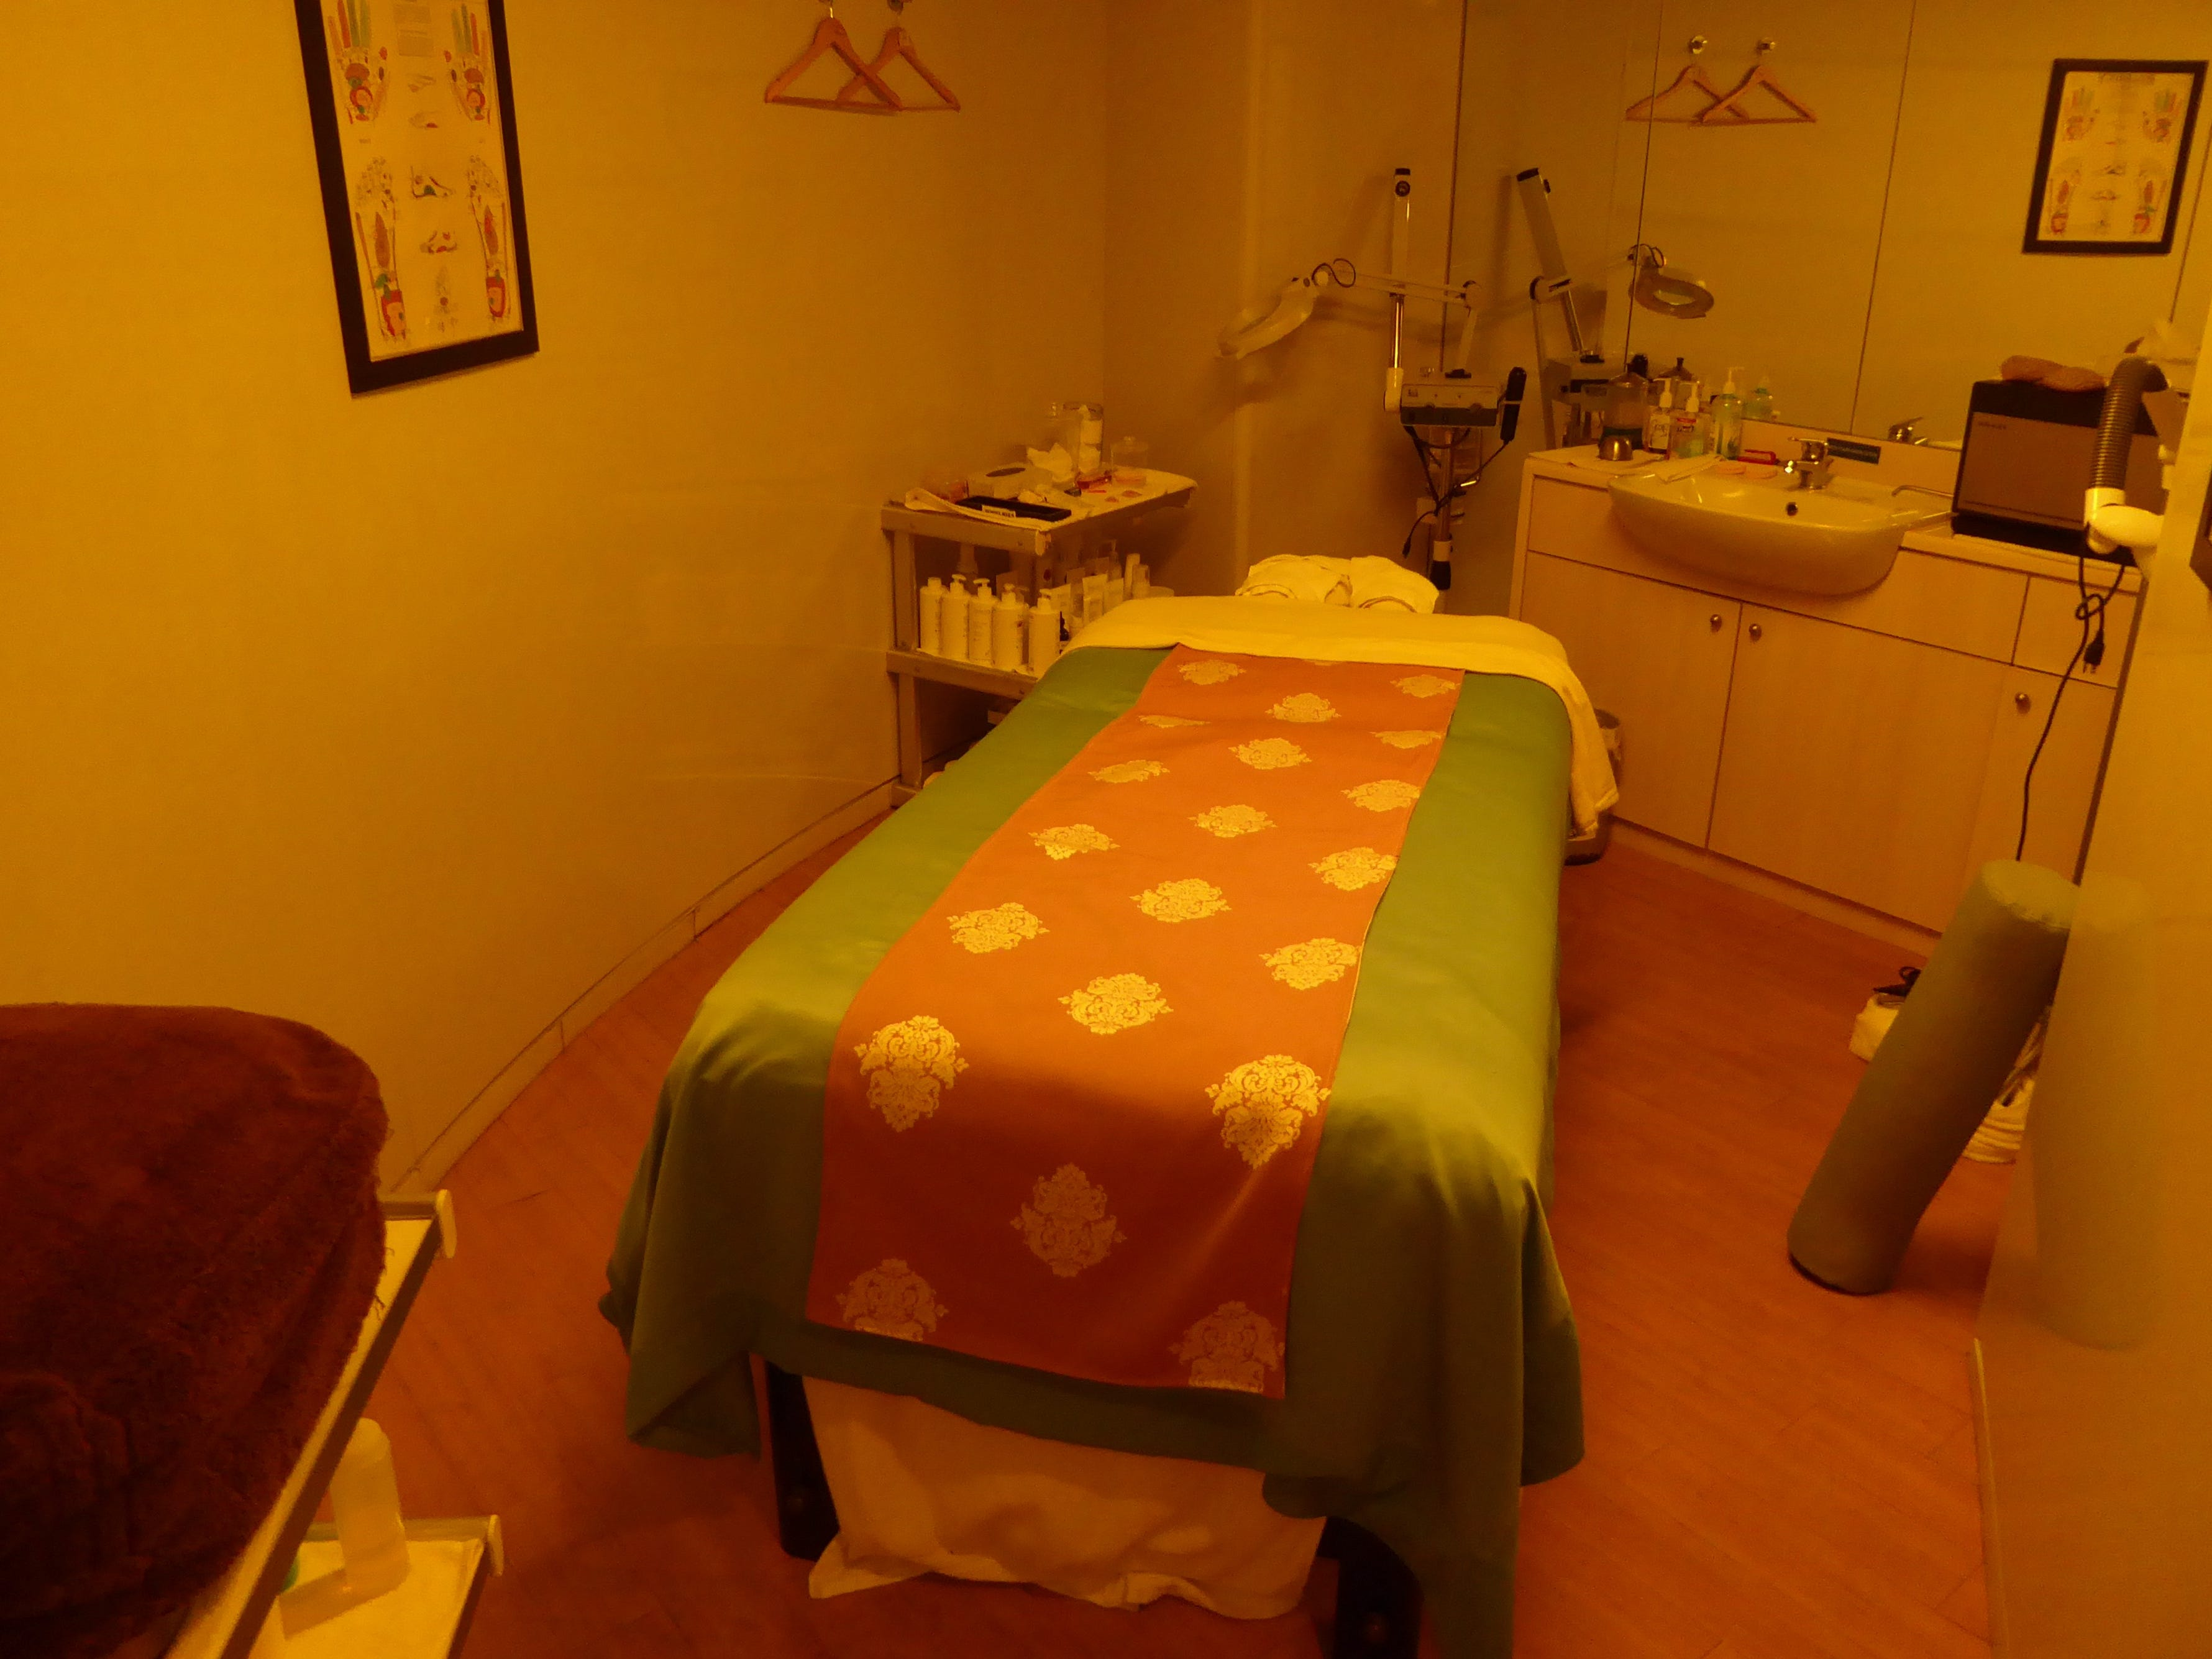 The Indulgence Spa has several treatment rooms offering a menu of massage and skin therapies. This is room No. 2.